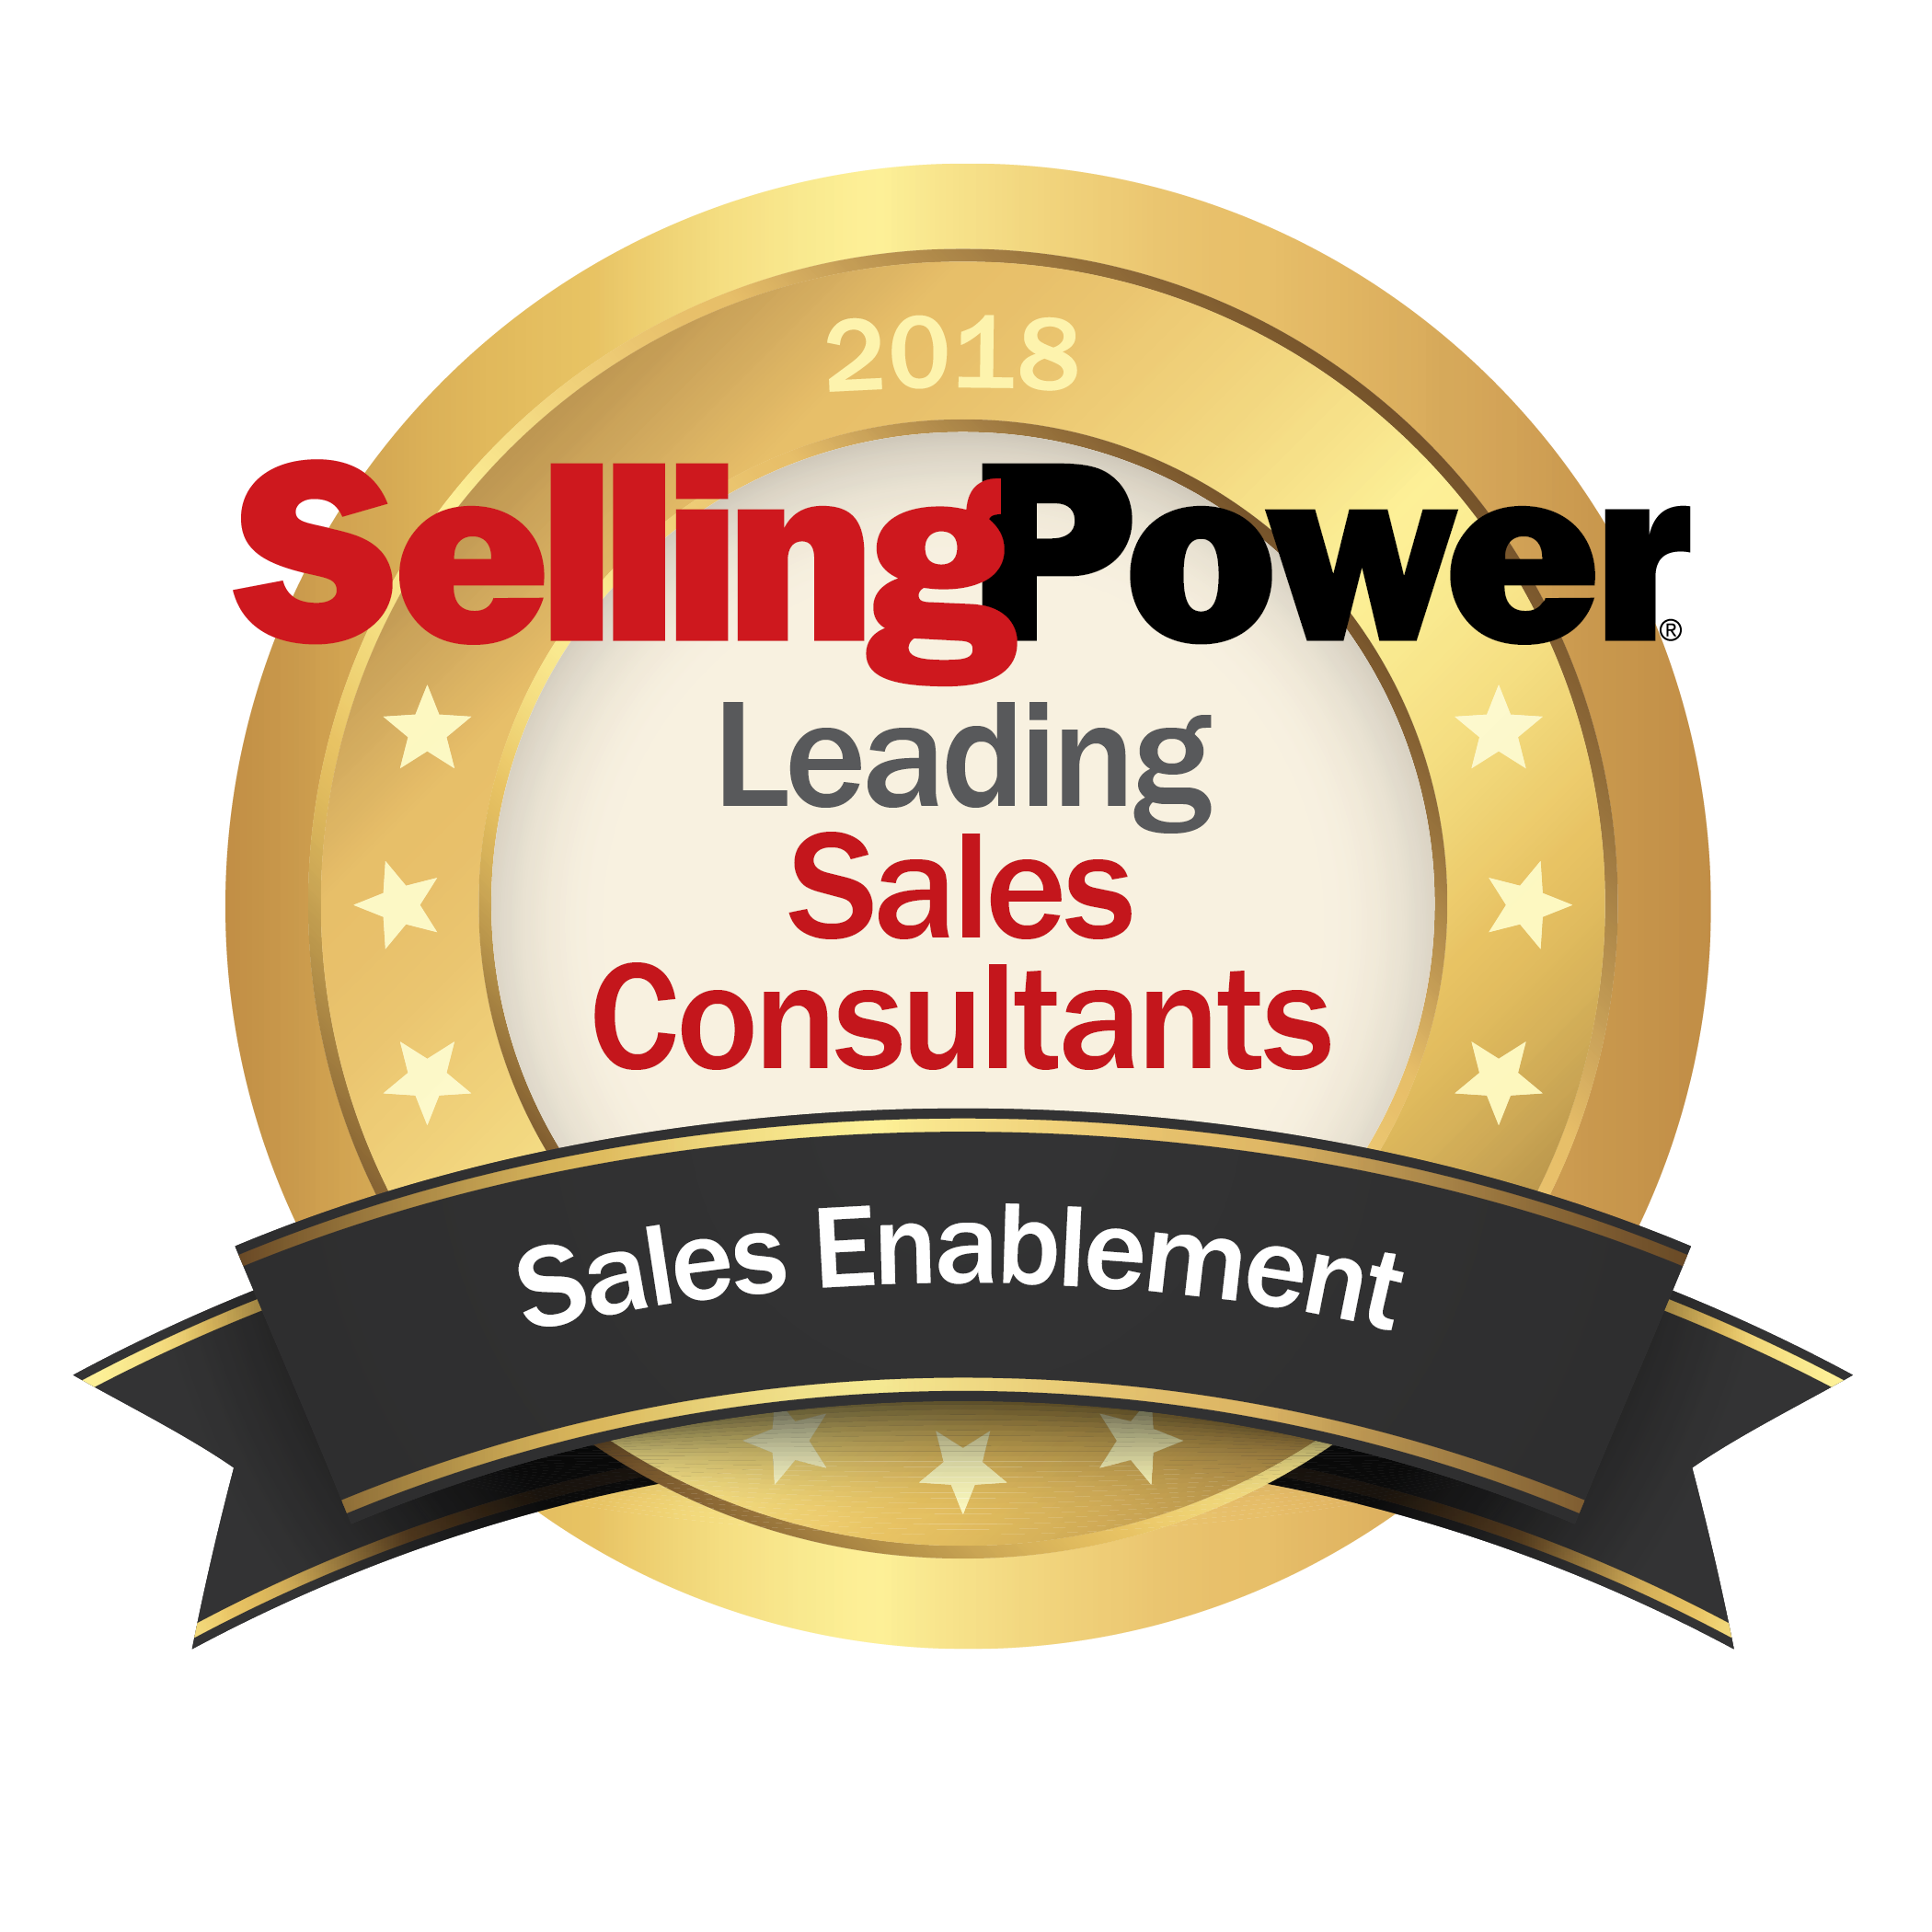 Leading Sales Consultants 2018 enable[1]